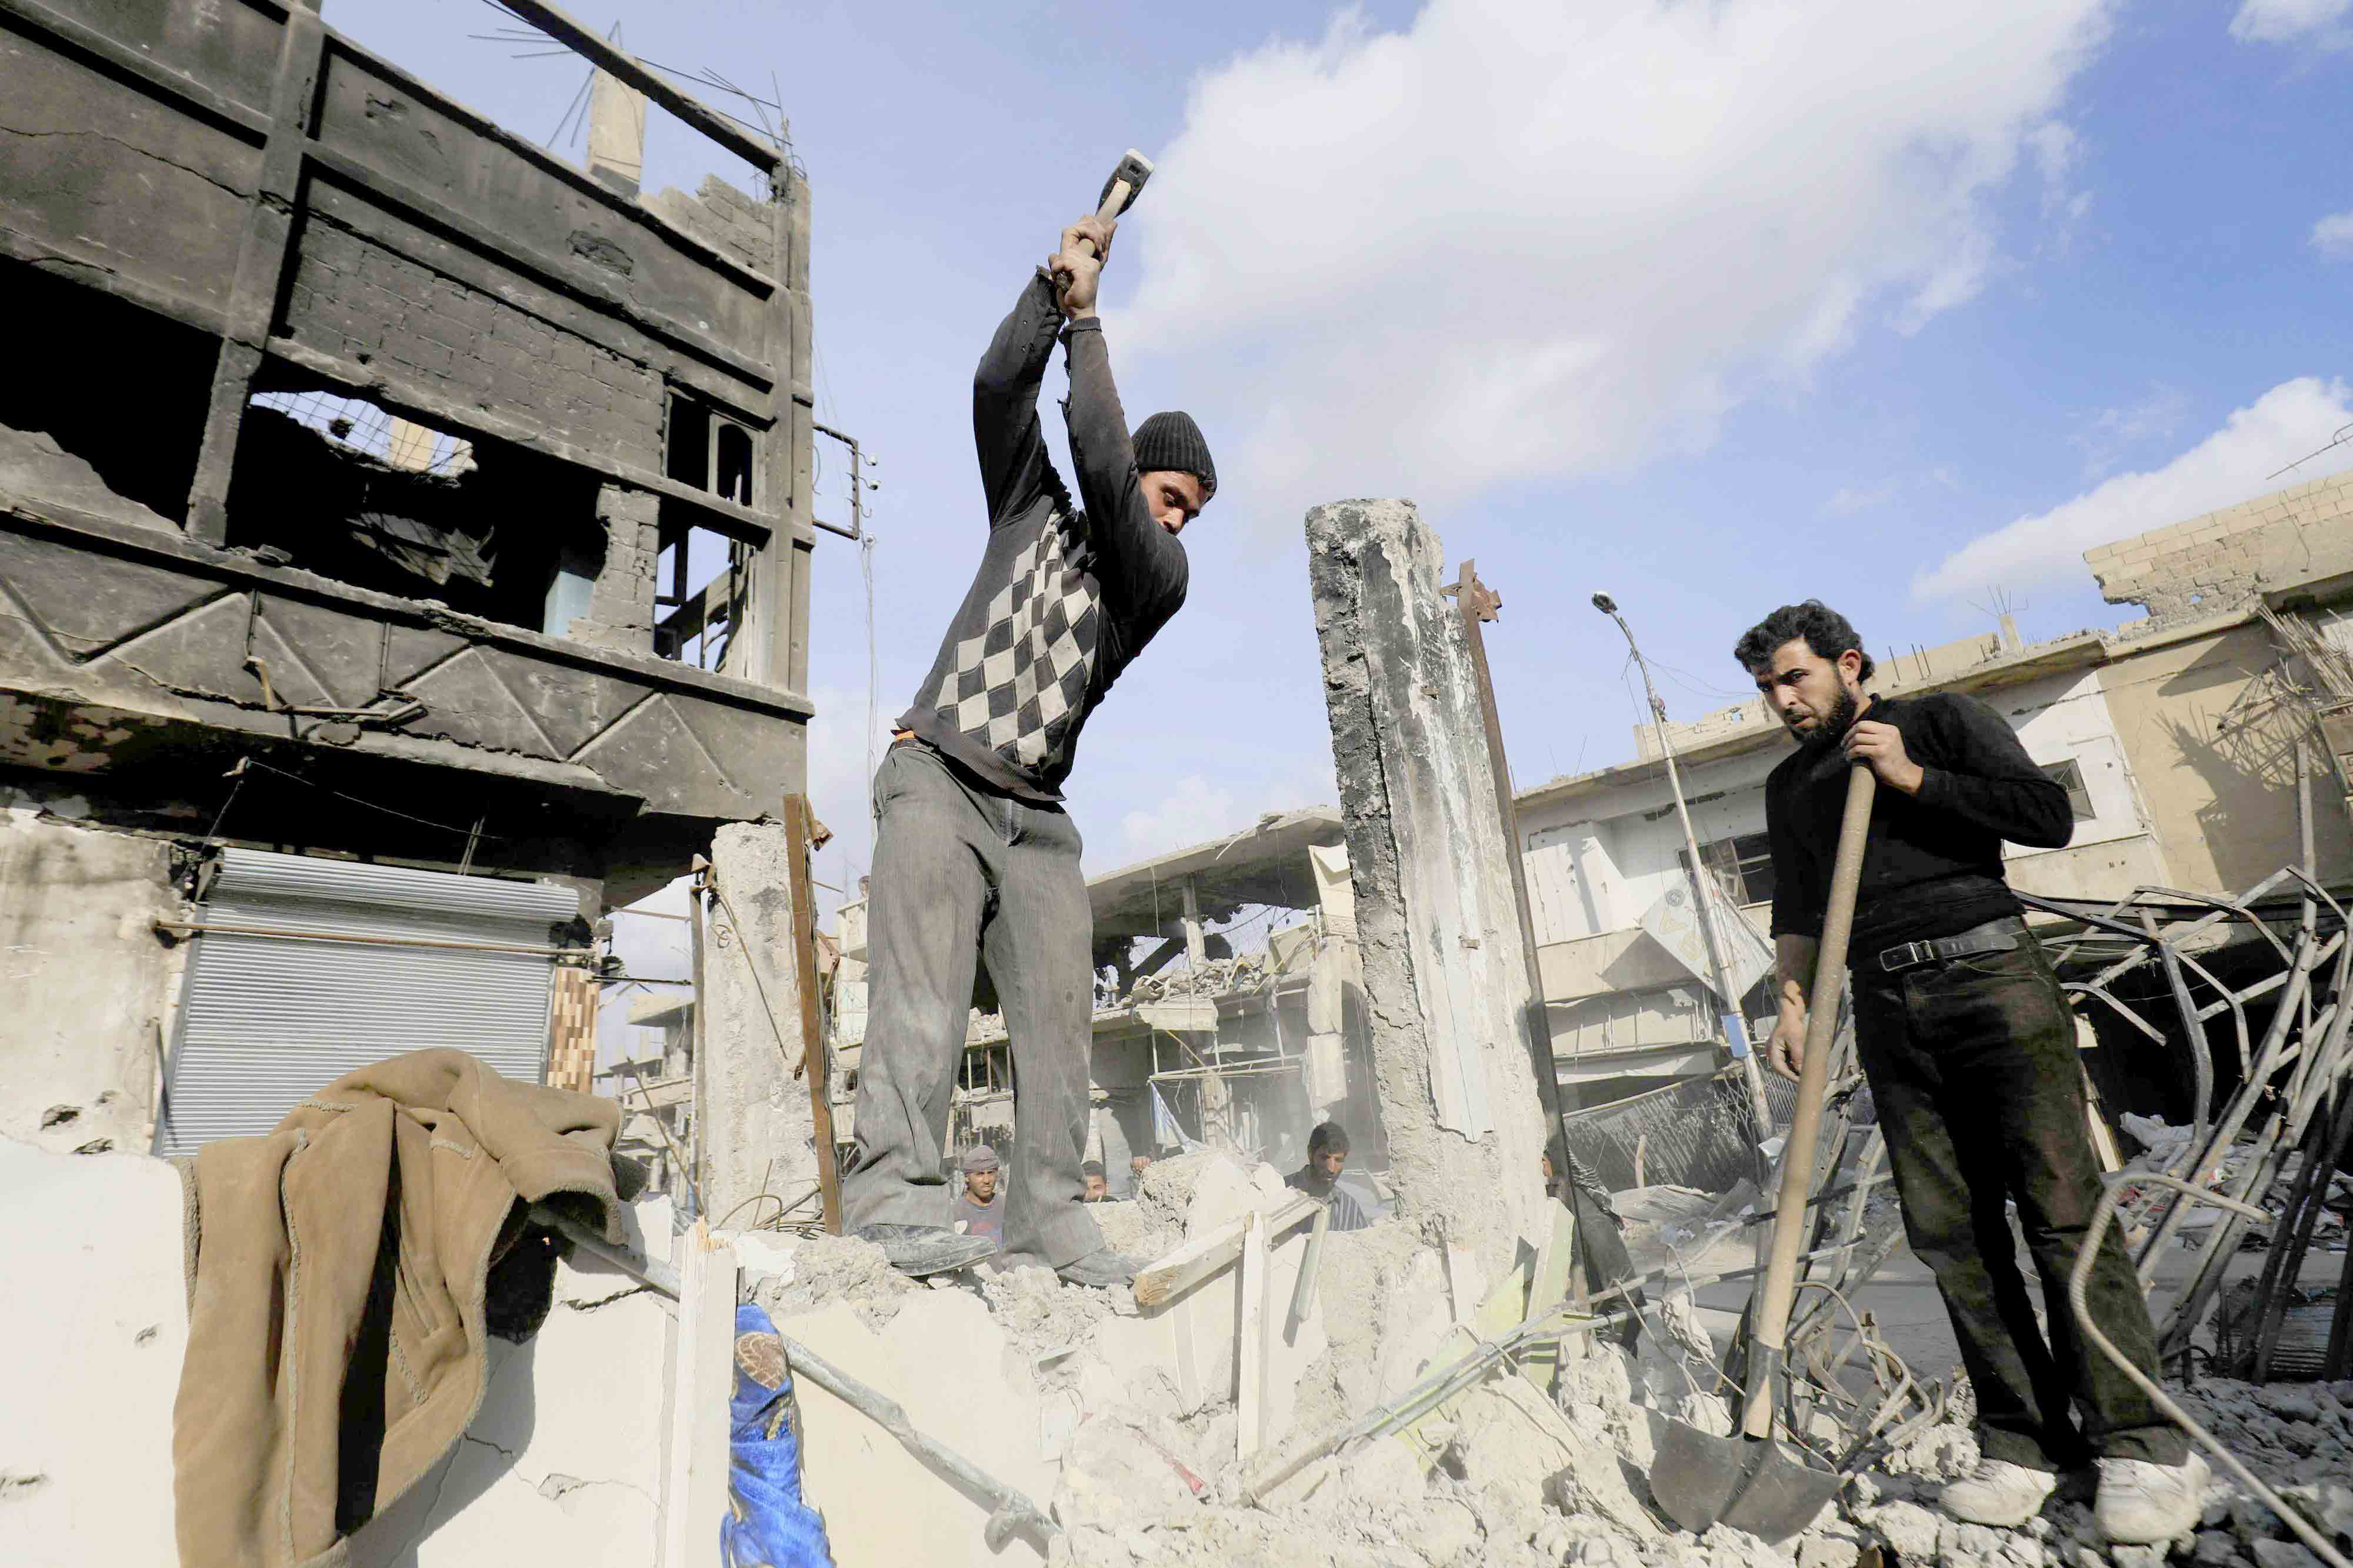 Syrian men work on reconstructing a damaged building in Raqqa. (AFP)